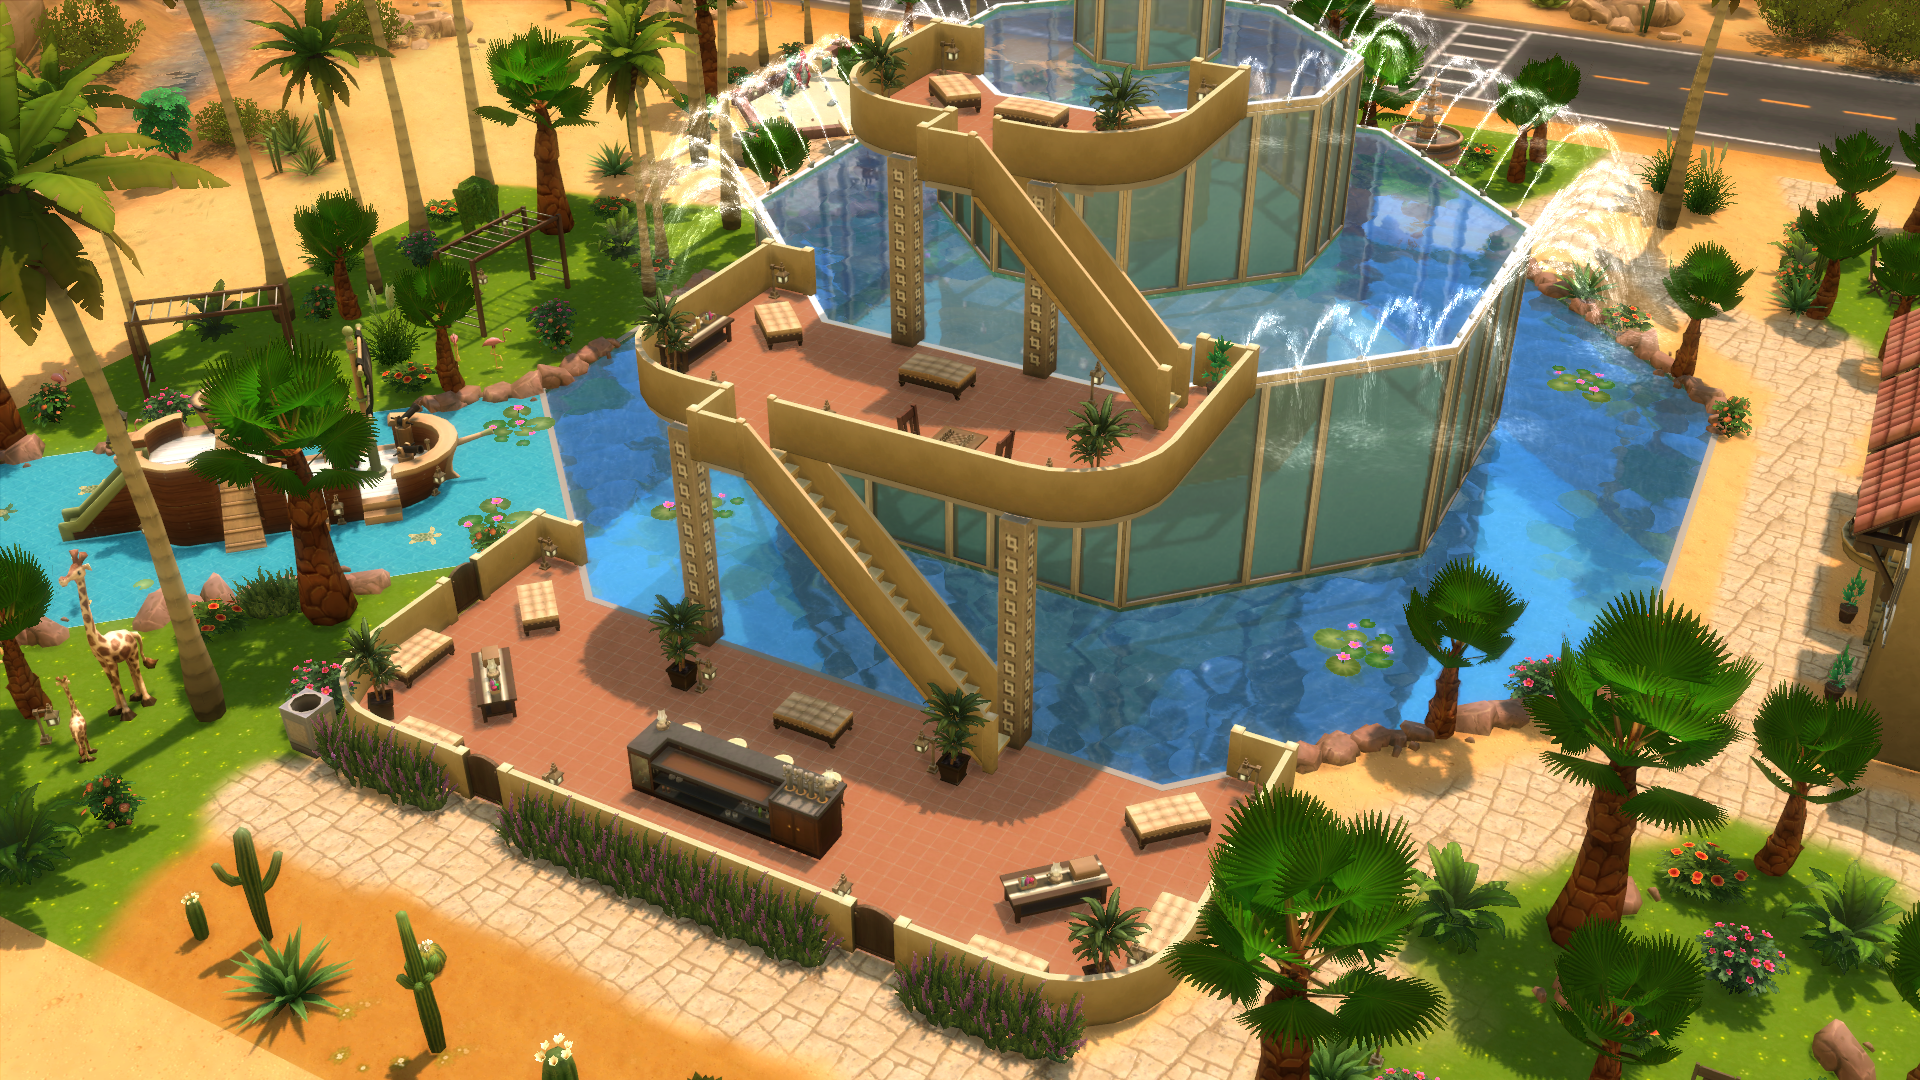 How to build a small island surrounded by water the for Pool designs sims 4